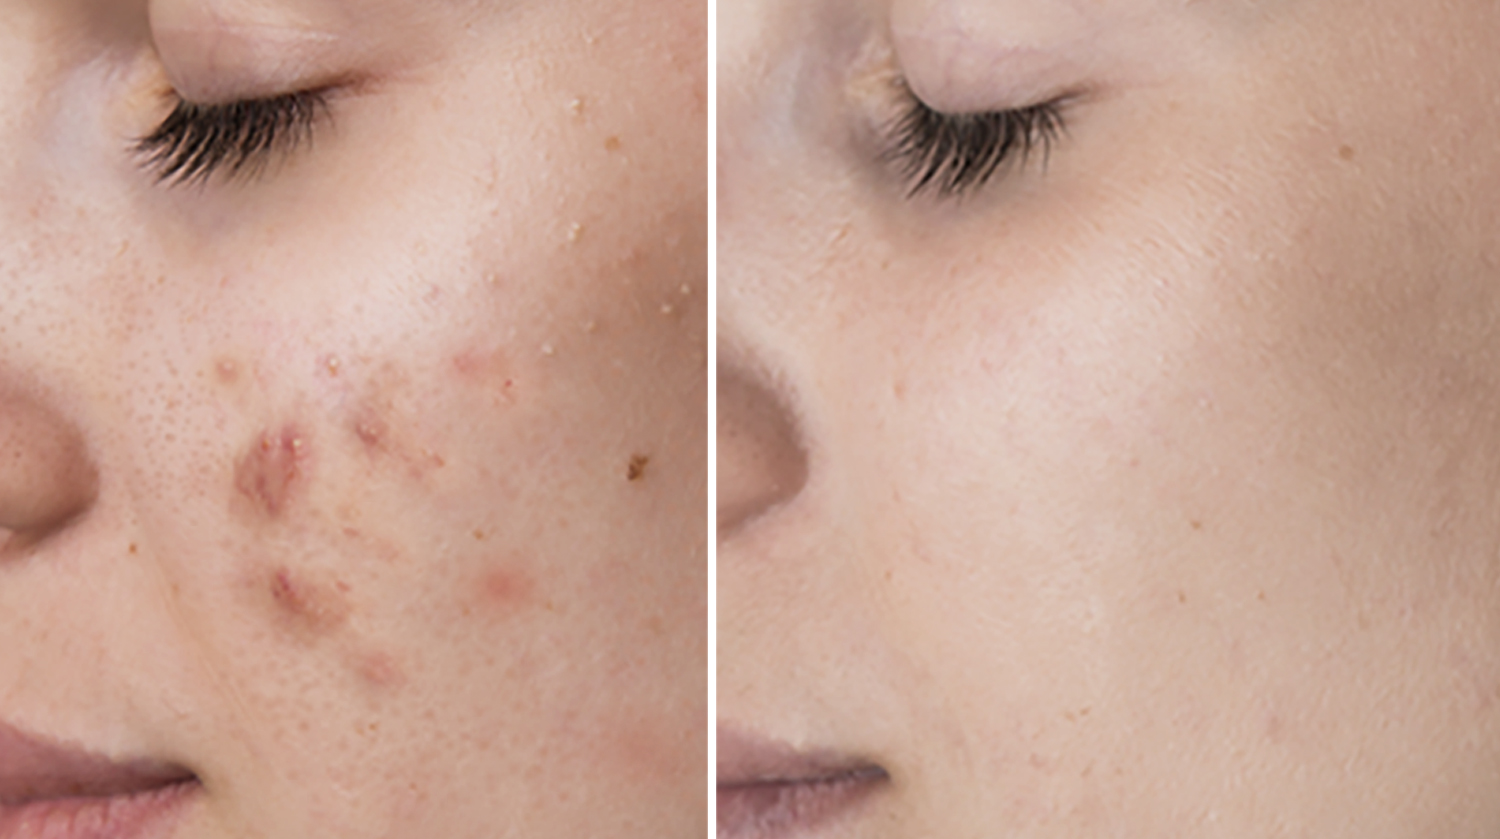 microneedling-acne-treatment-in-houston.jpg